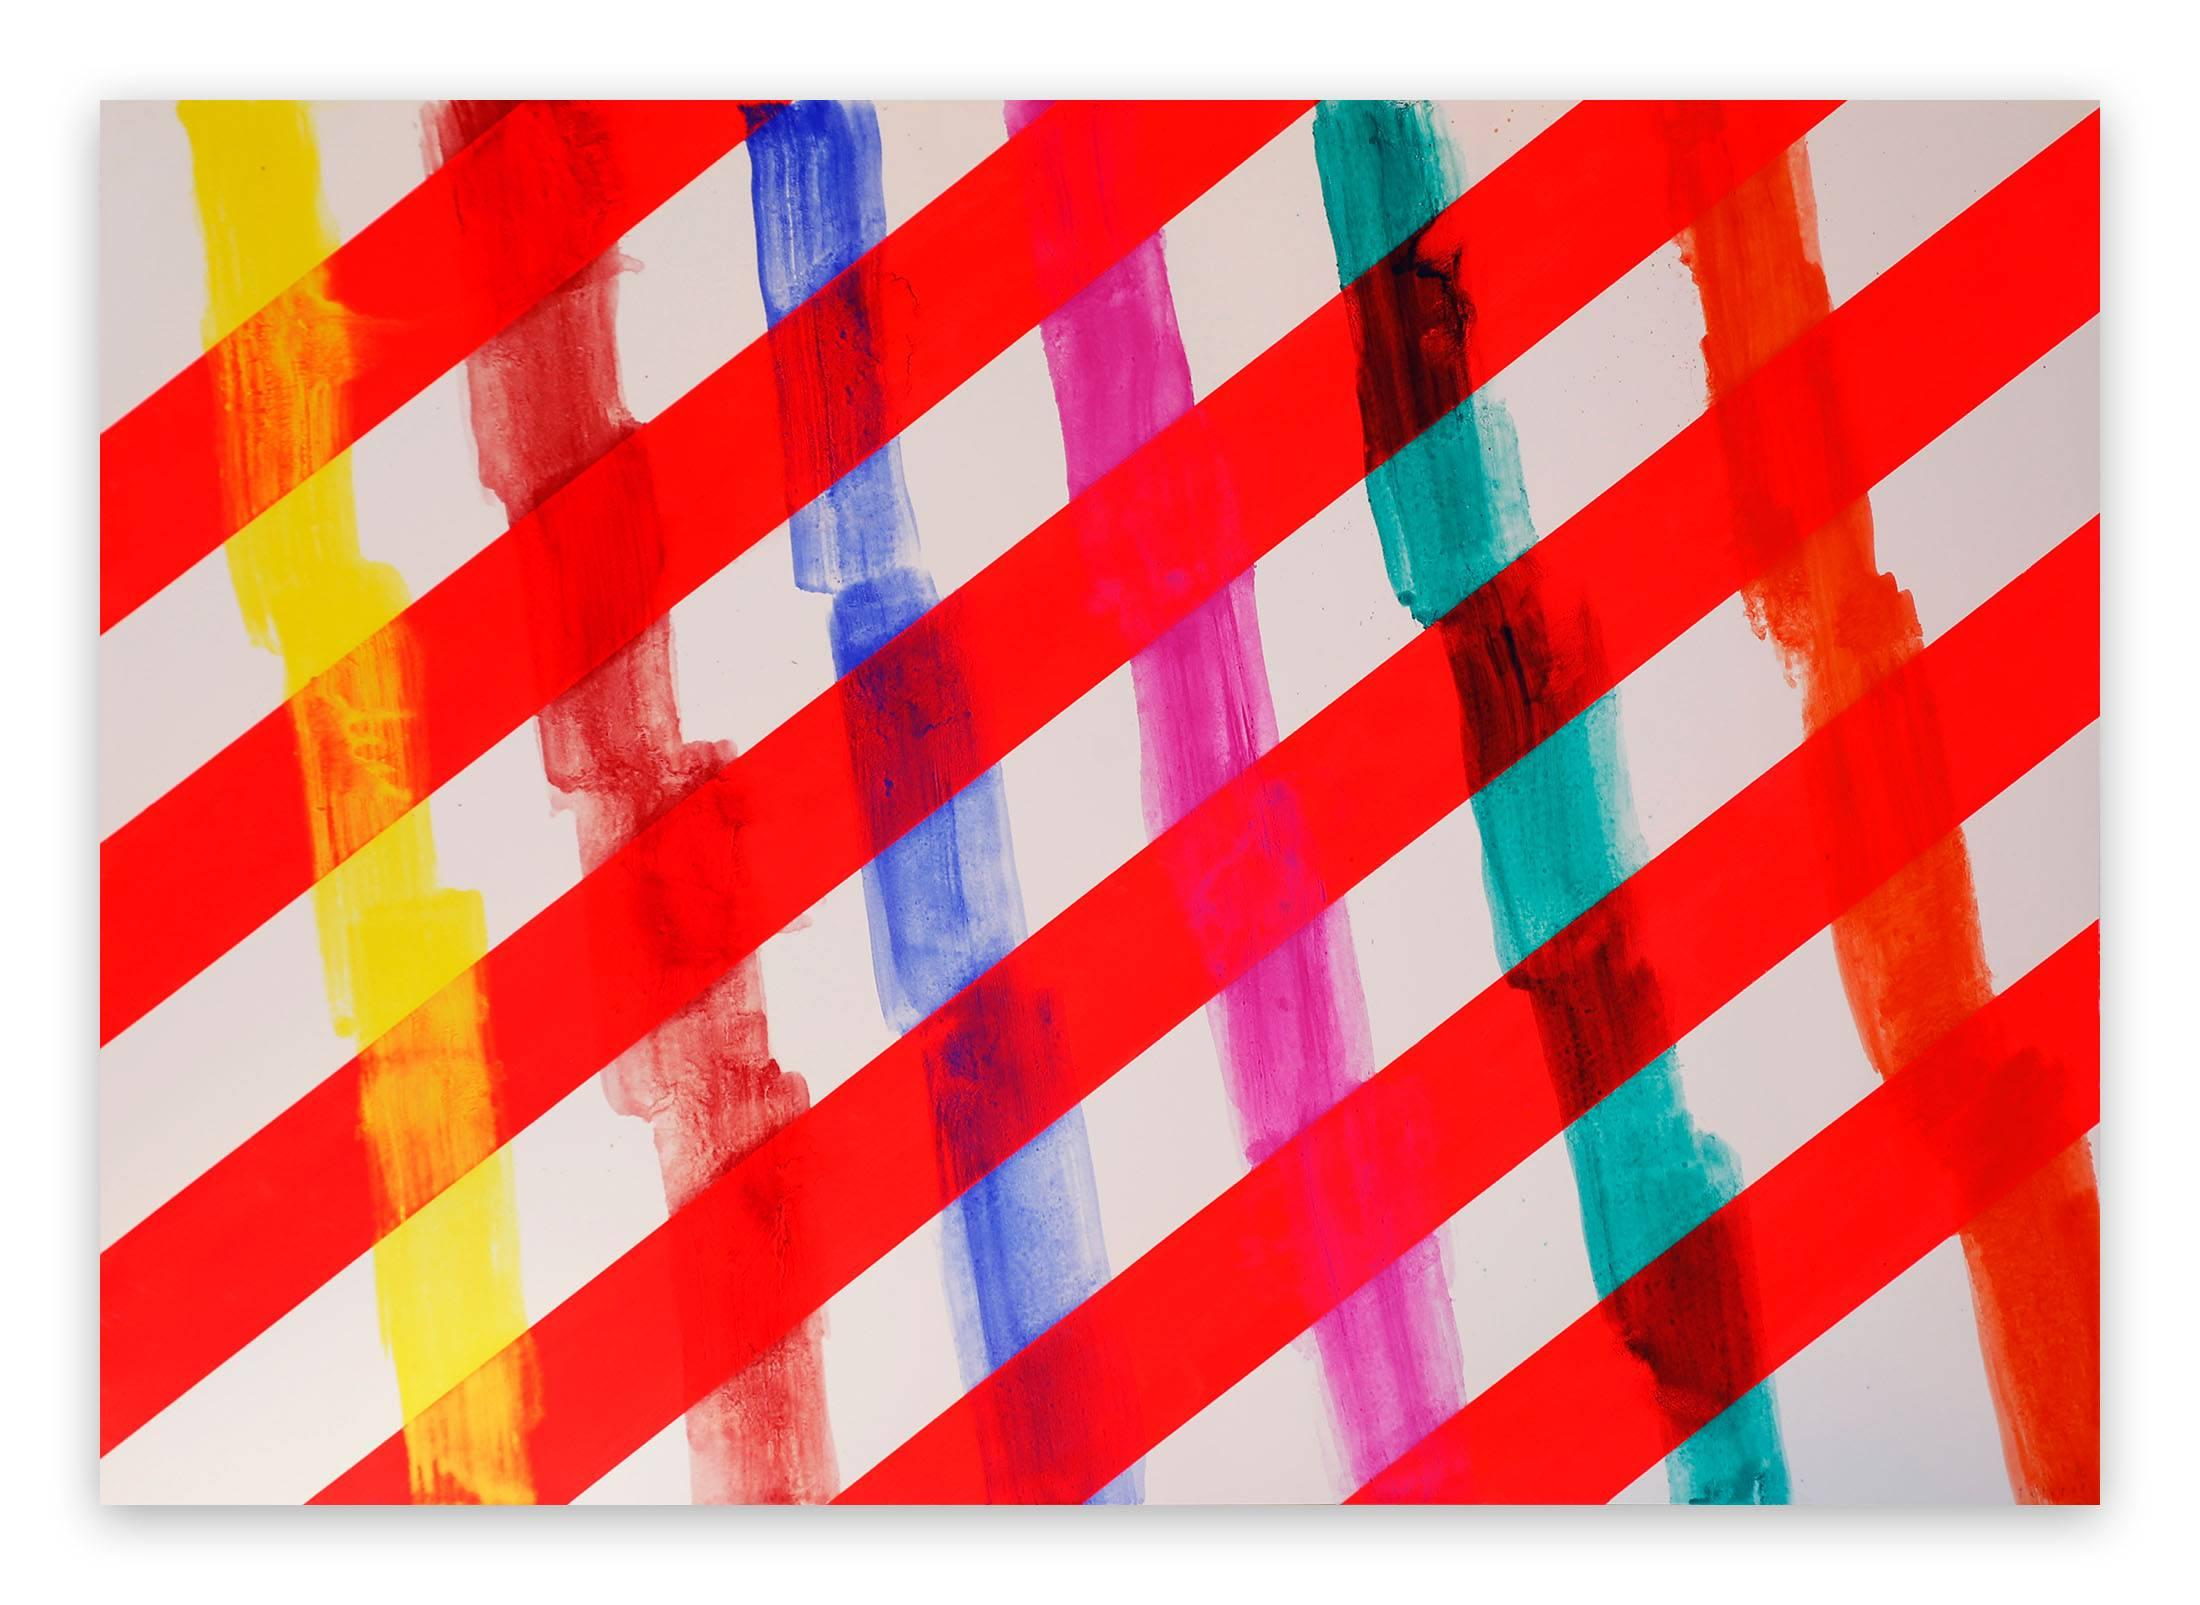 Untitled 10 (Abstract painting)